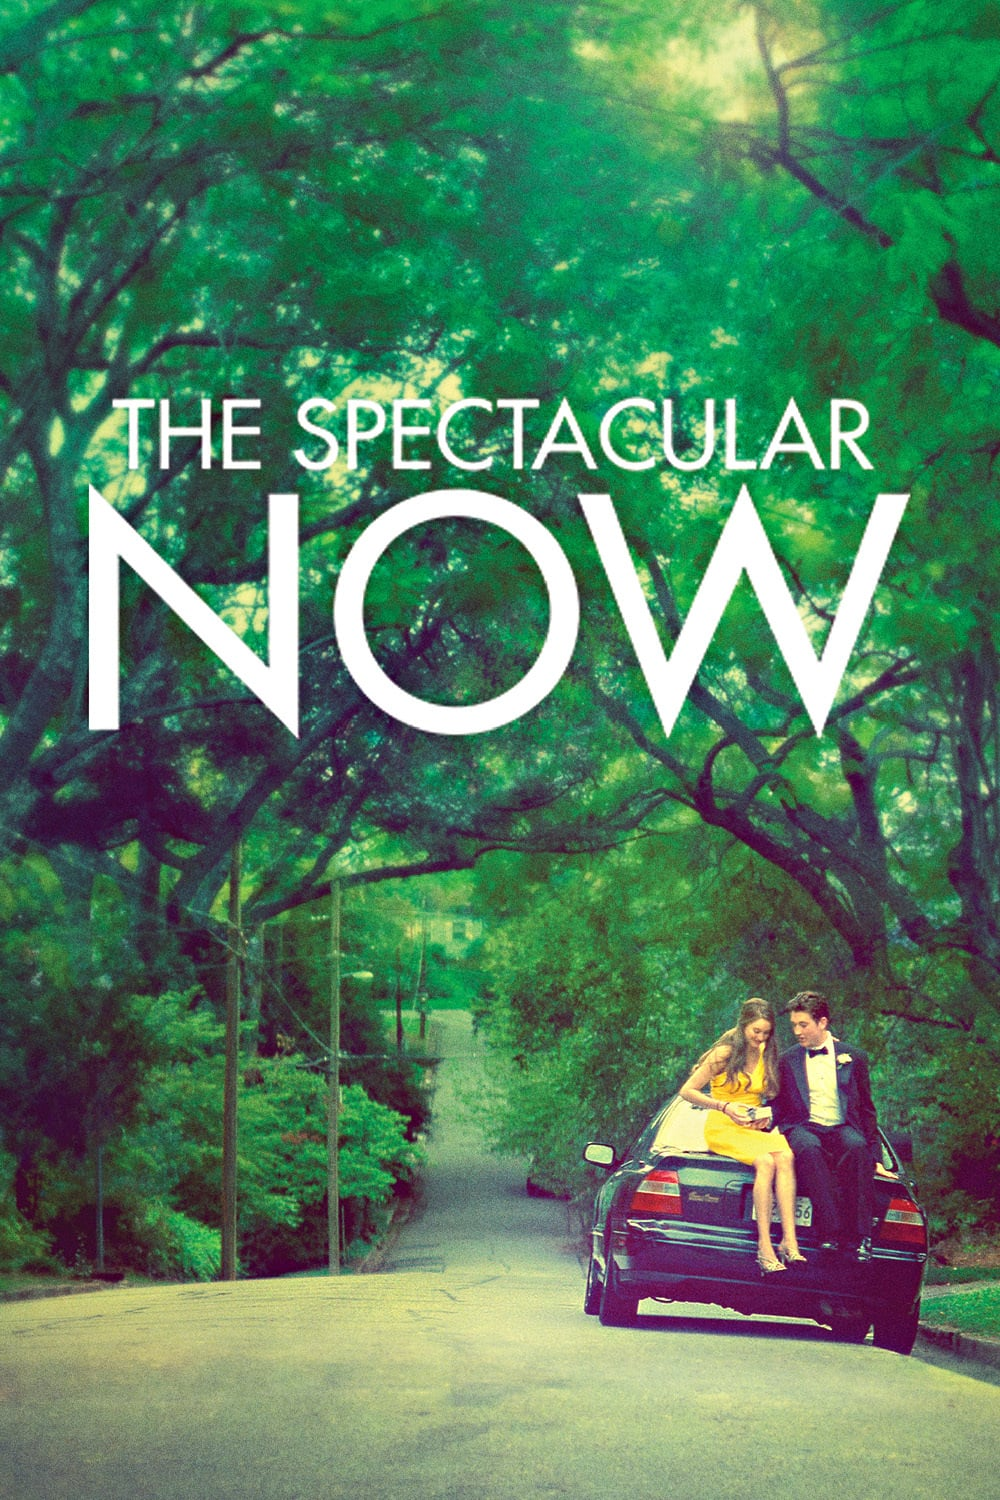 The Spectacular Now, 2013